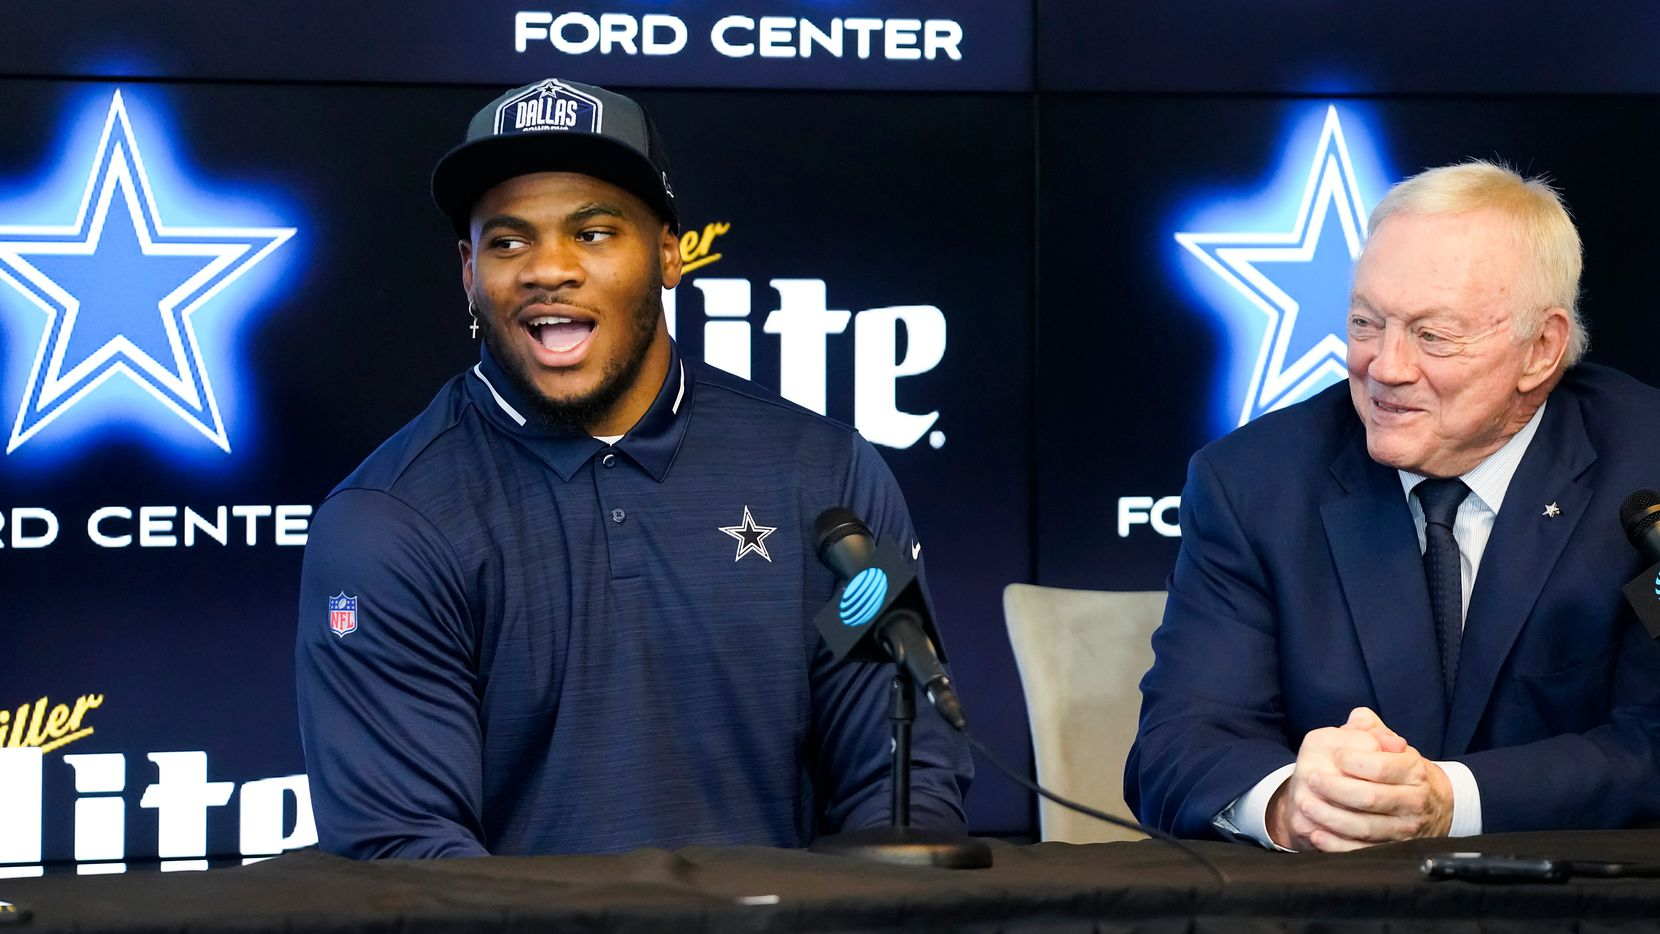 Dallas Cowboys first-round draft pick Micah Parsons (left) laughs with team owner Jerry Jones during a press conference introducing the linebacker from Penn State at The Star on Friday, April 30, 2021, in Frisco.